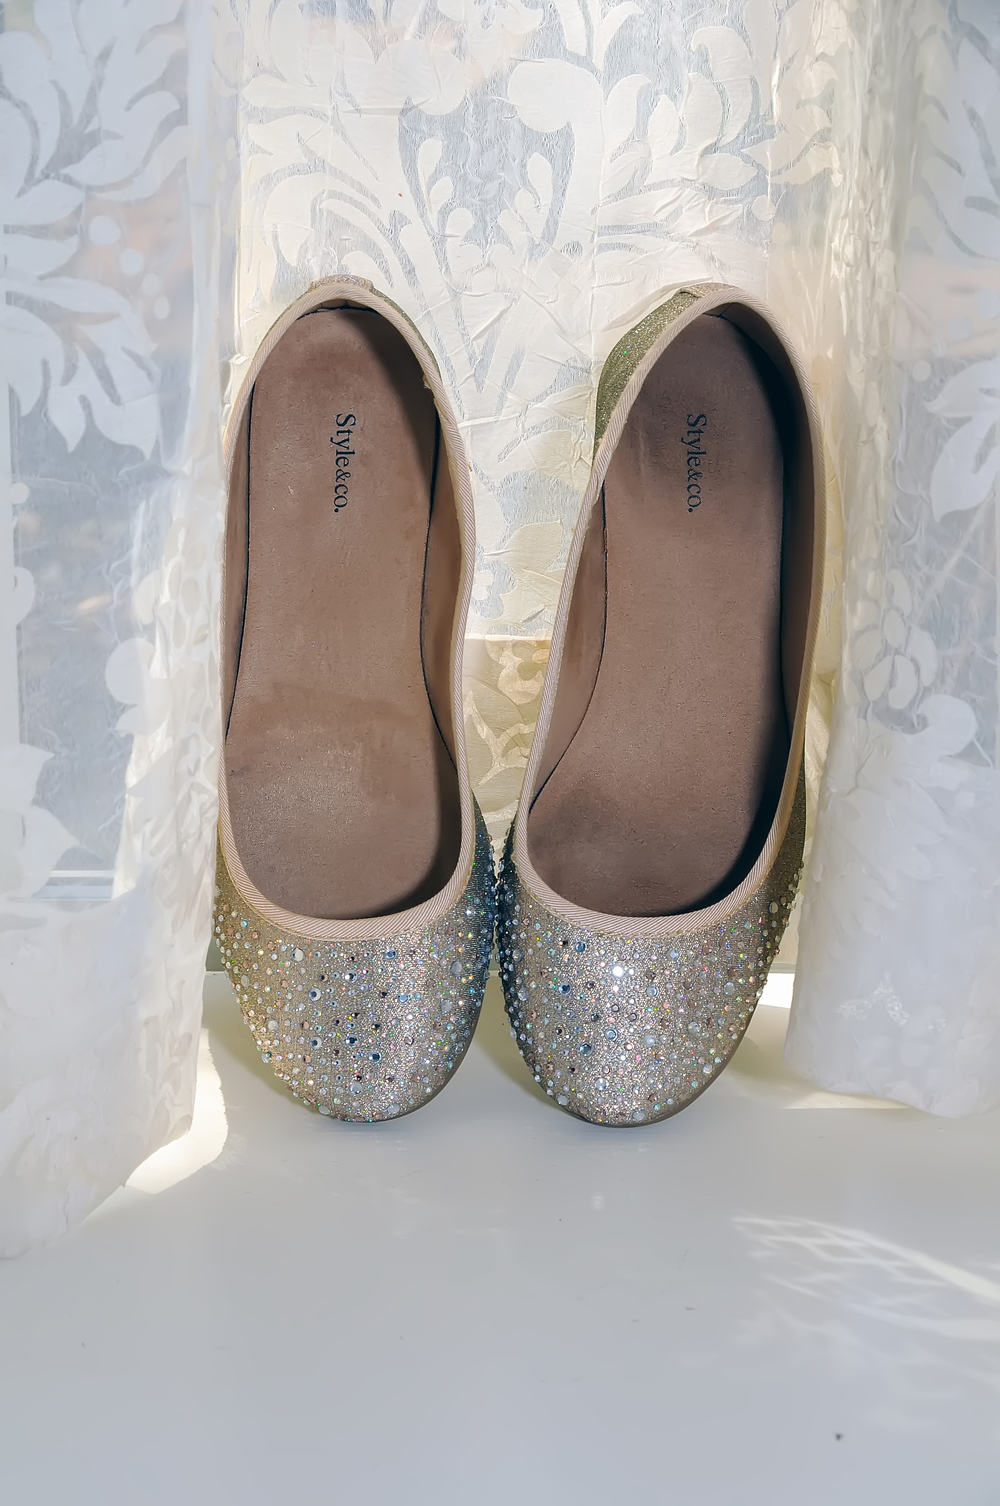 guthrie oklahoma wedding venue - dominion house - gold bridal heels